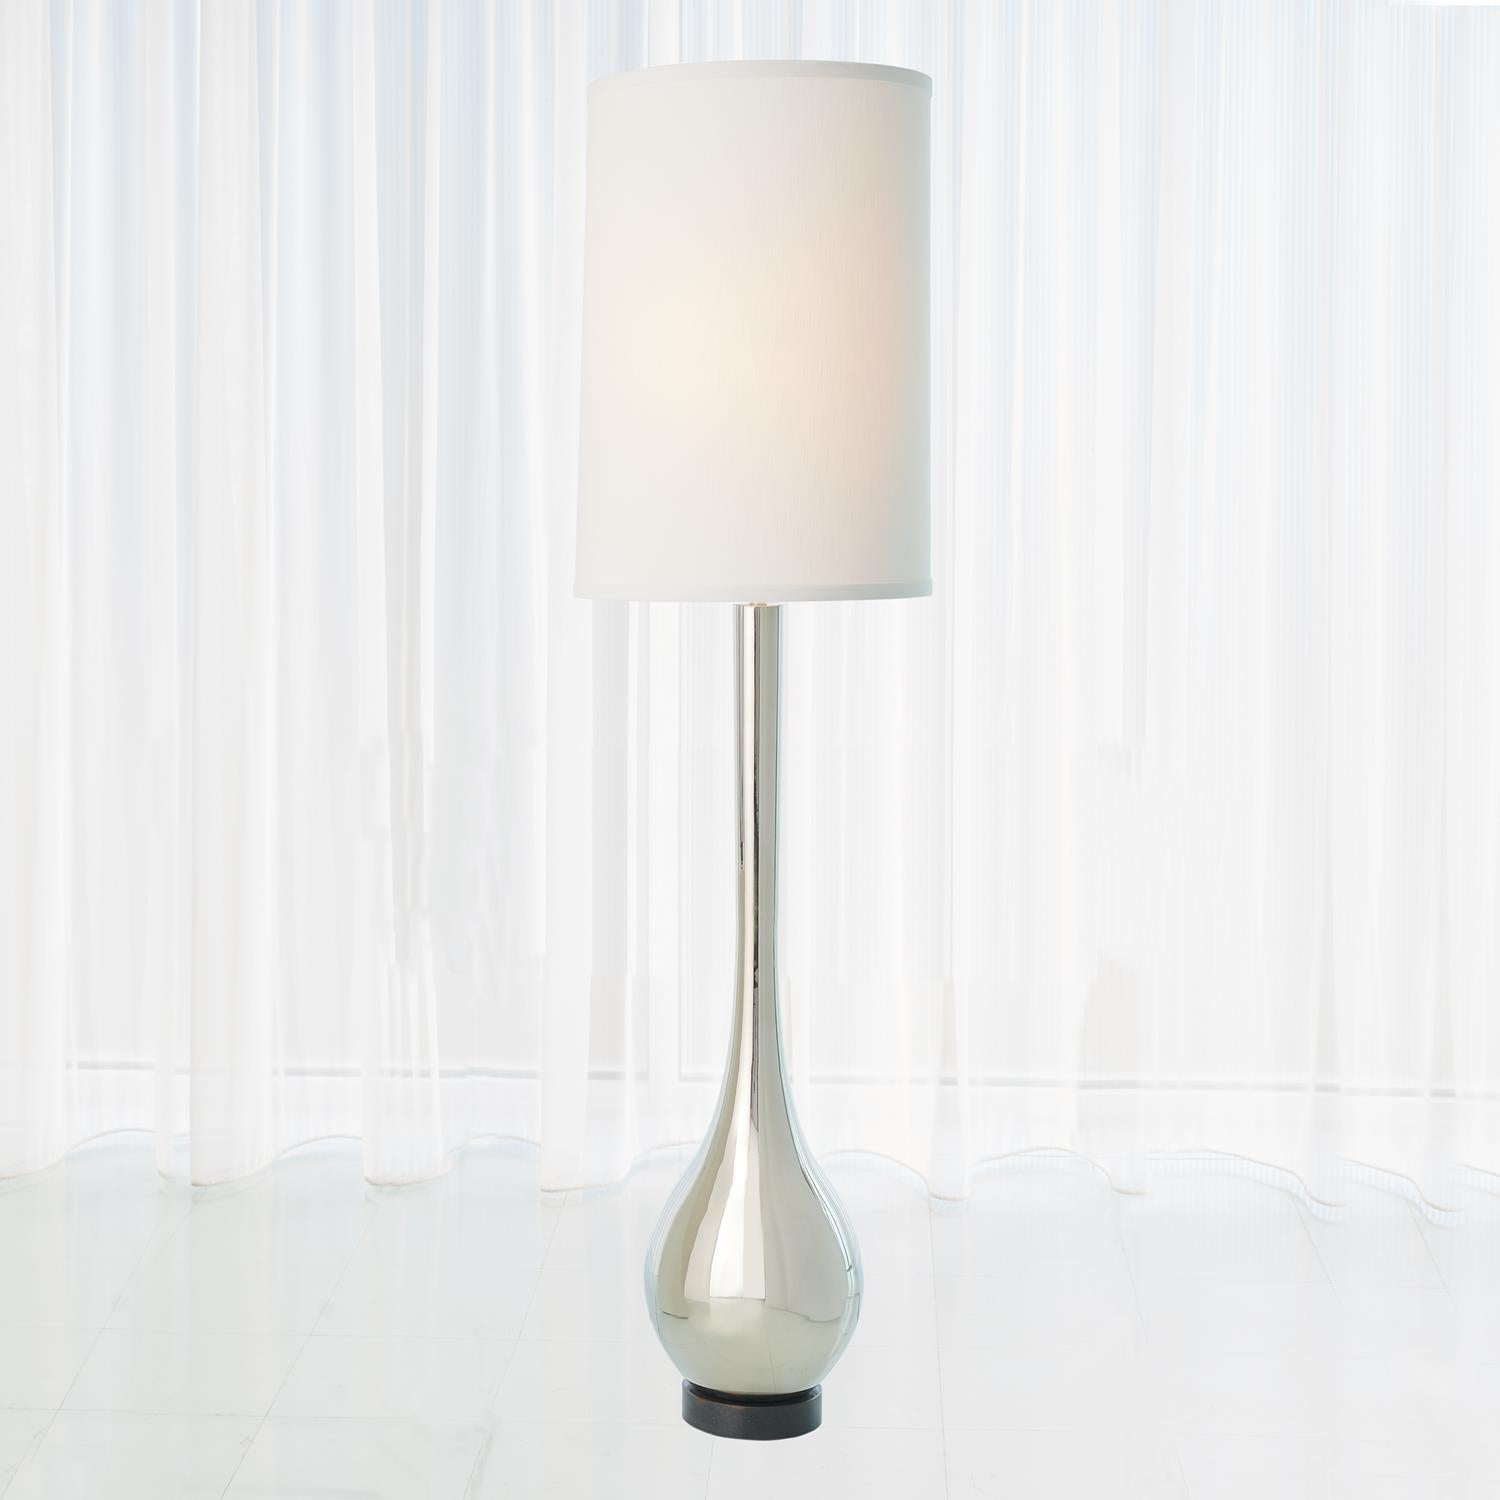 Bulb 81 H Floor Lamp Nickel Grats Decor Interior Design